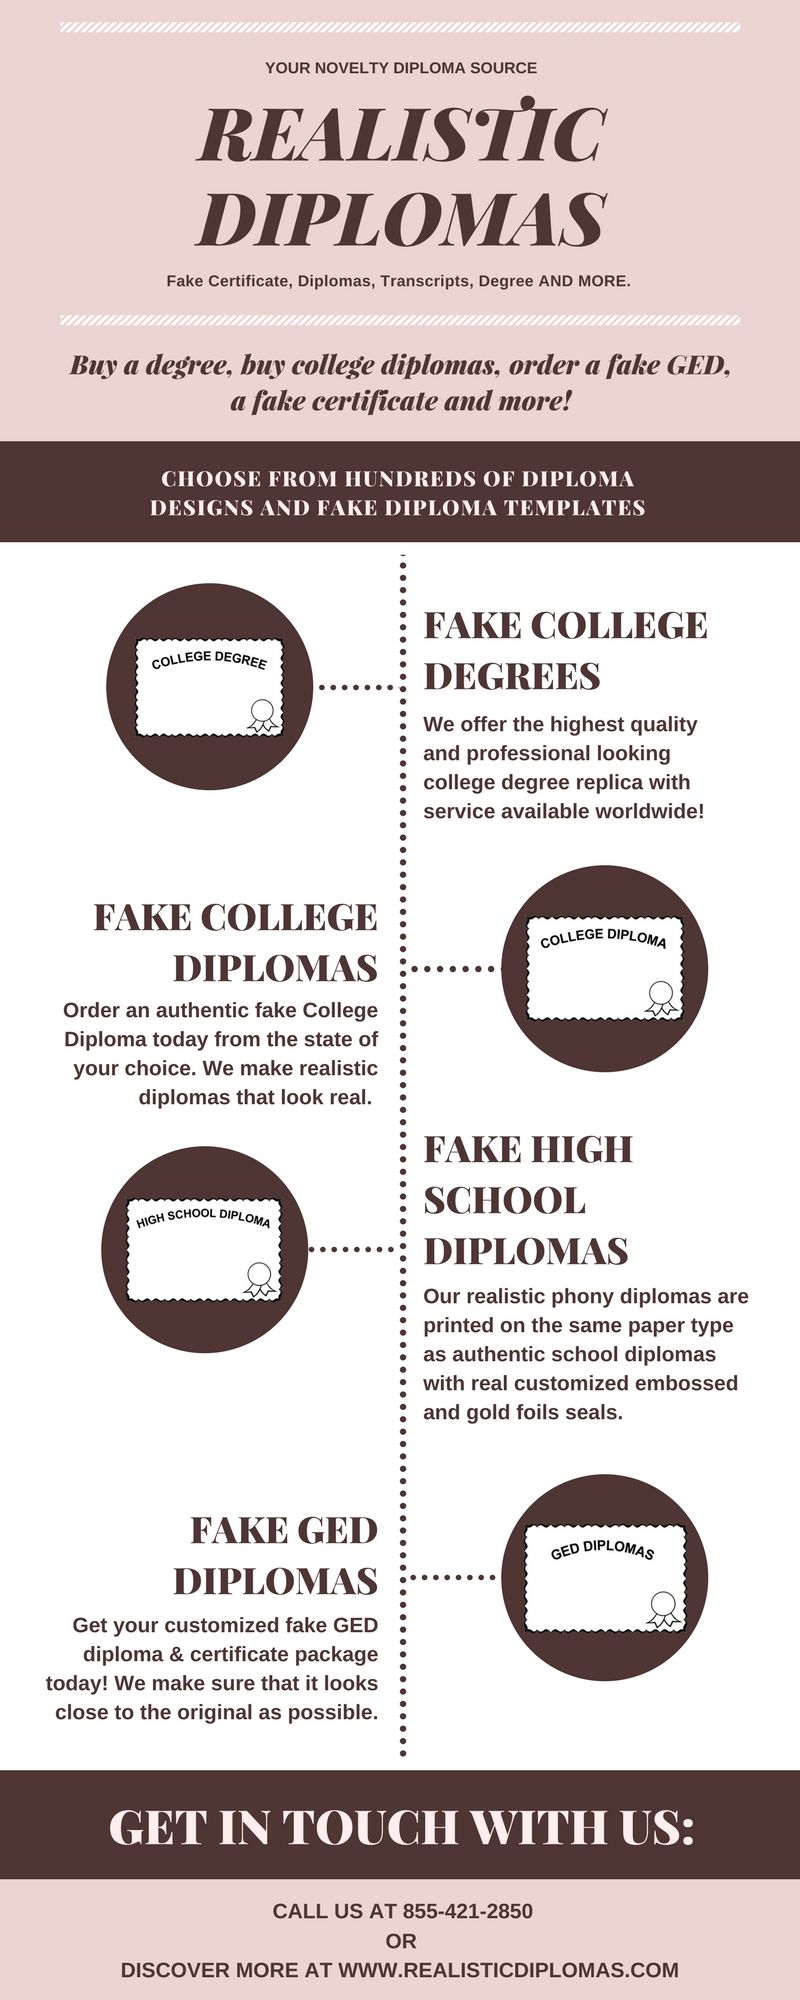 Realisticdiplomas Offers A Variety Of Fake Degrees Fake